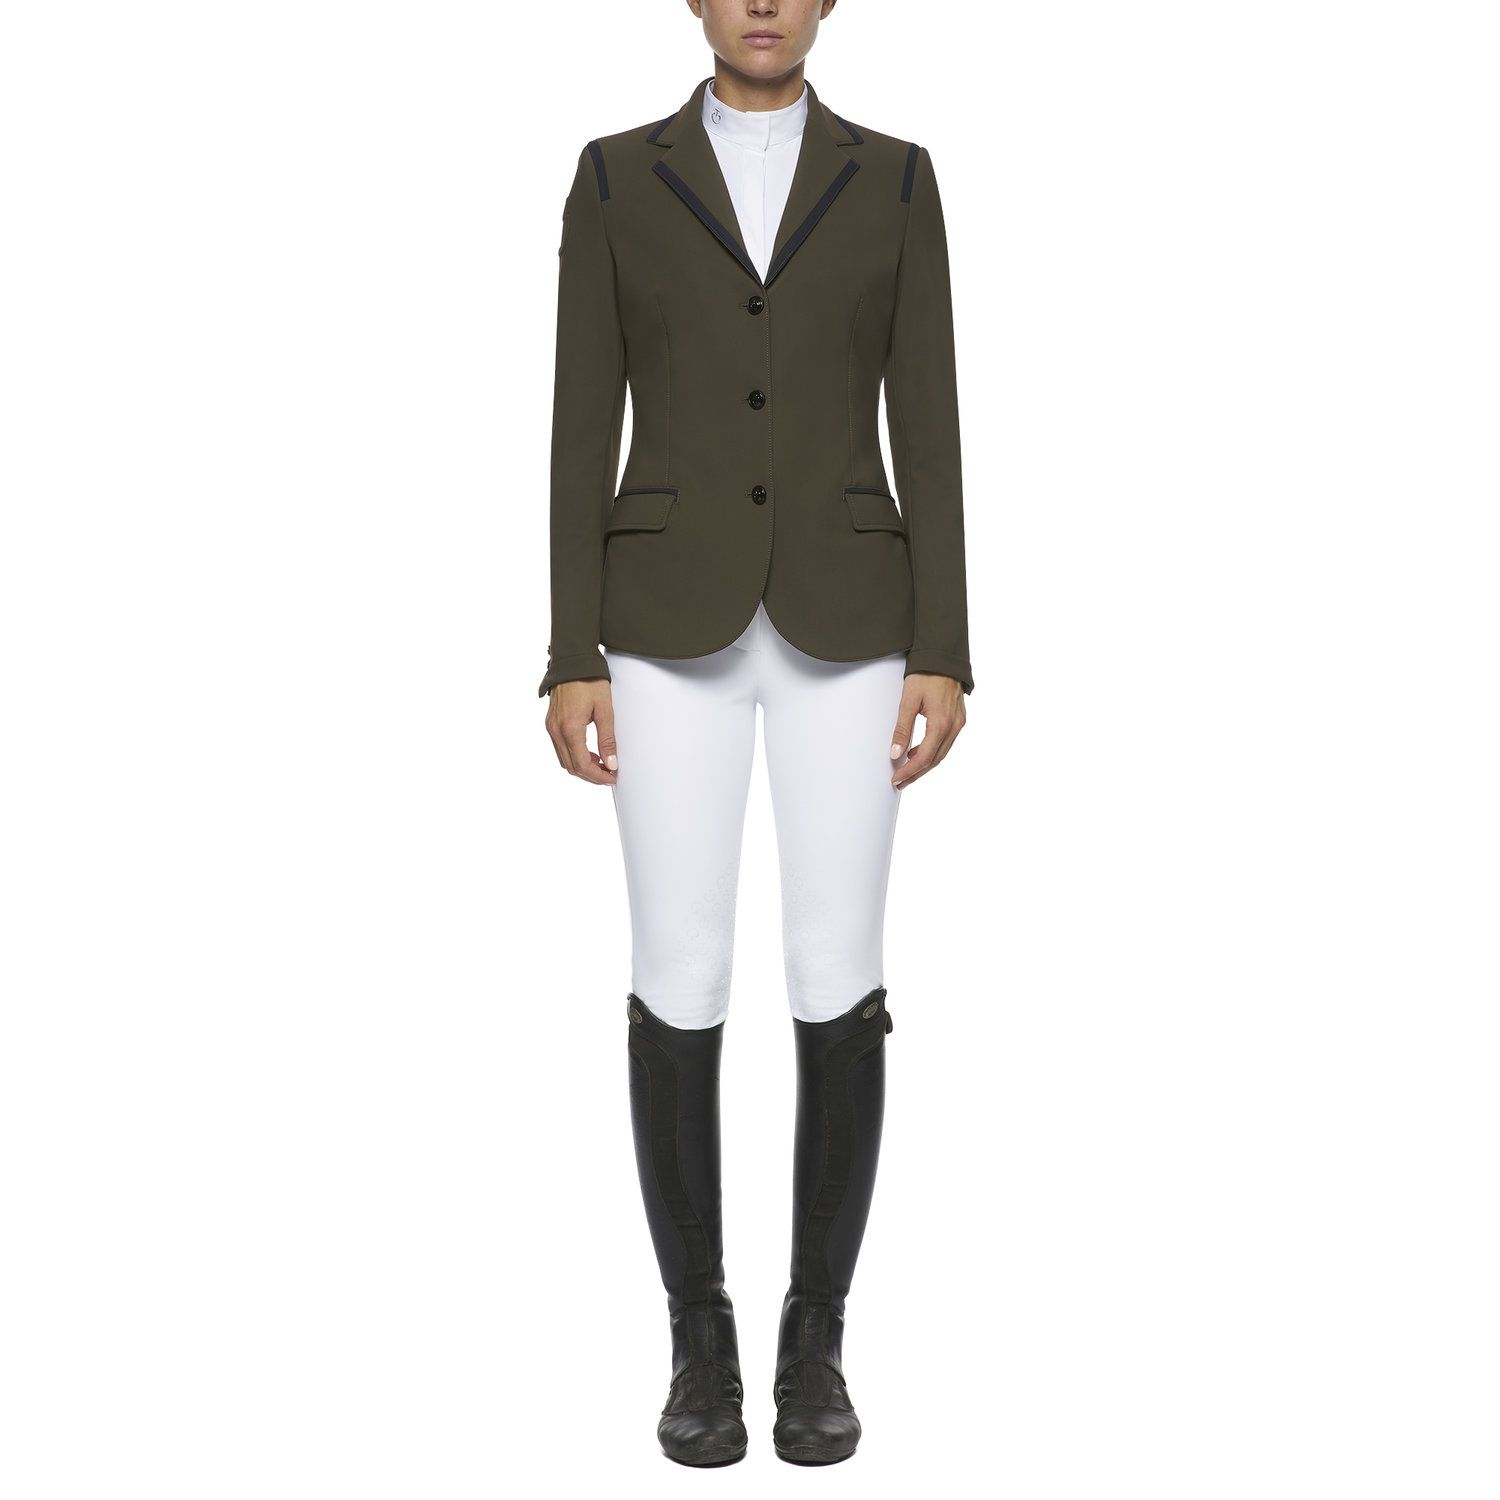 Women's competition riding jacket with piping